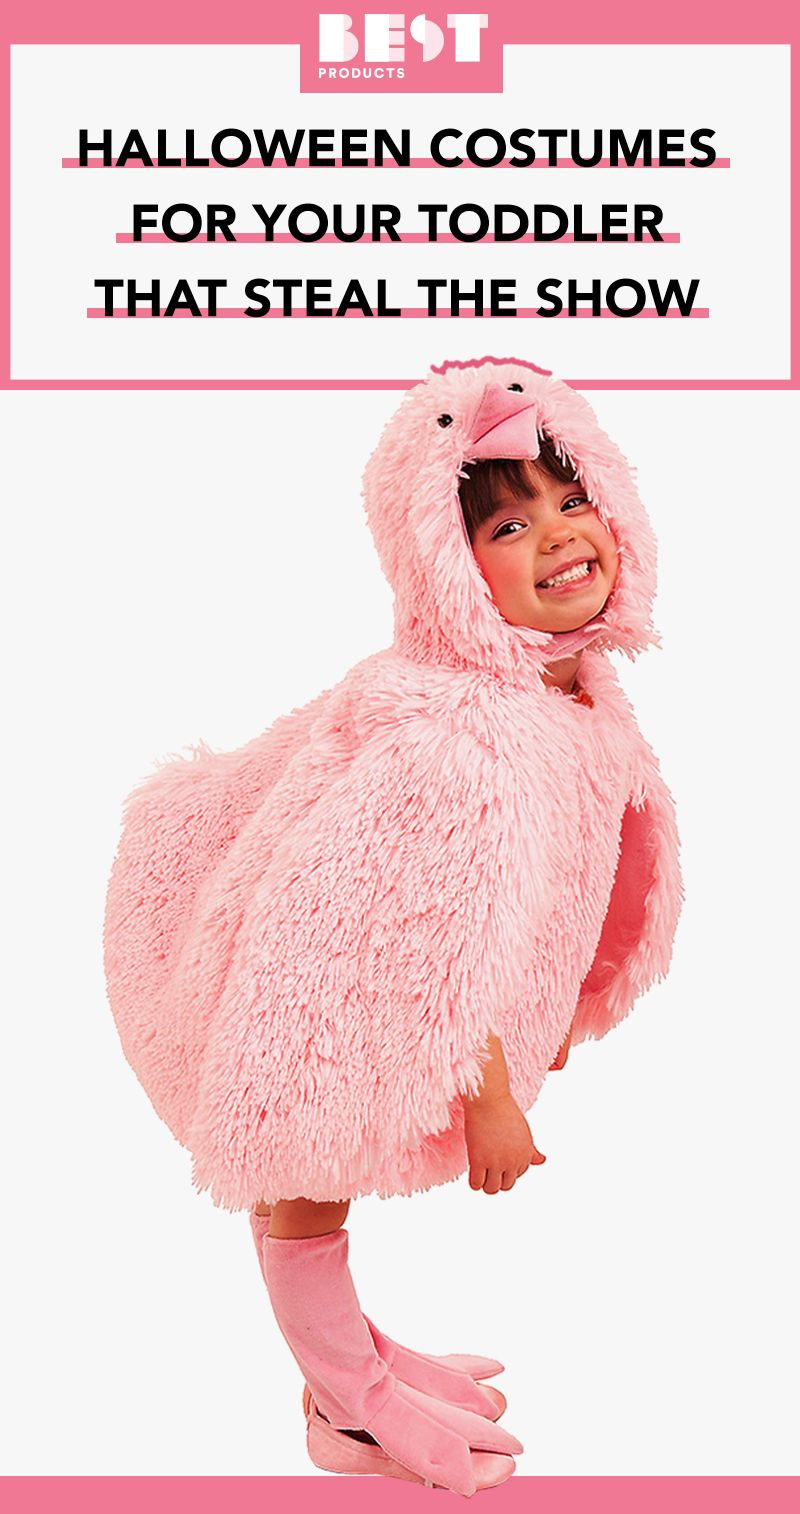 16 Best Toddler Halloween Costumes in 2018 - Cute Halloween Costumes for Toddlers  sc 1 st  BestProducts.com & 16 Best Toddler Halloween Costumes in 2018 - Cute Halloween Costumes ...